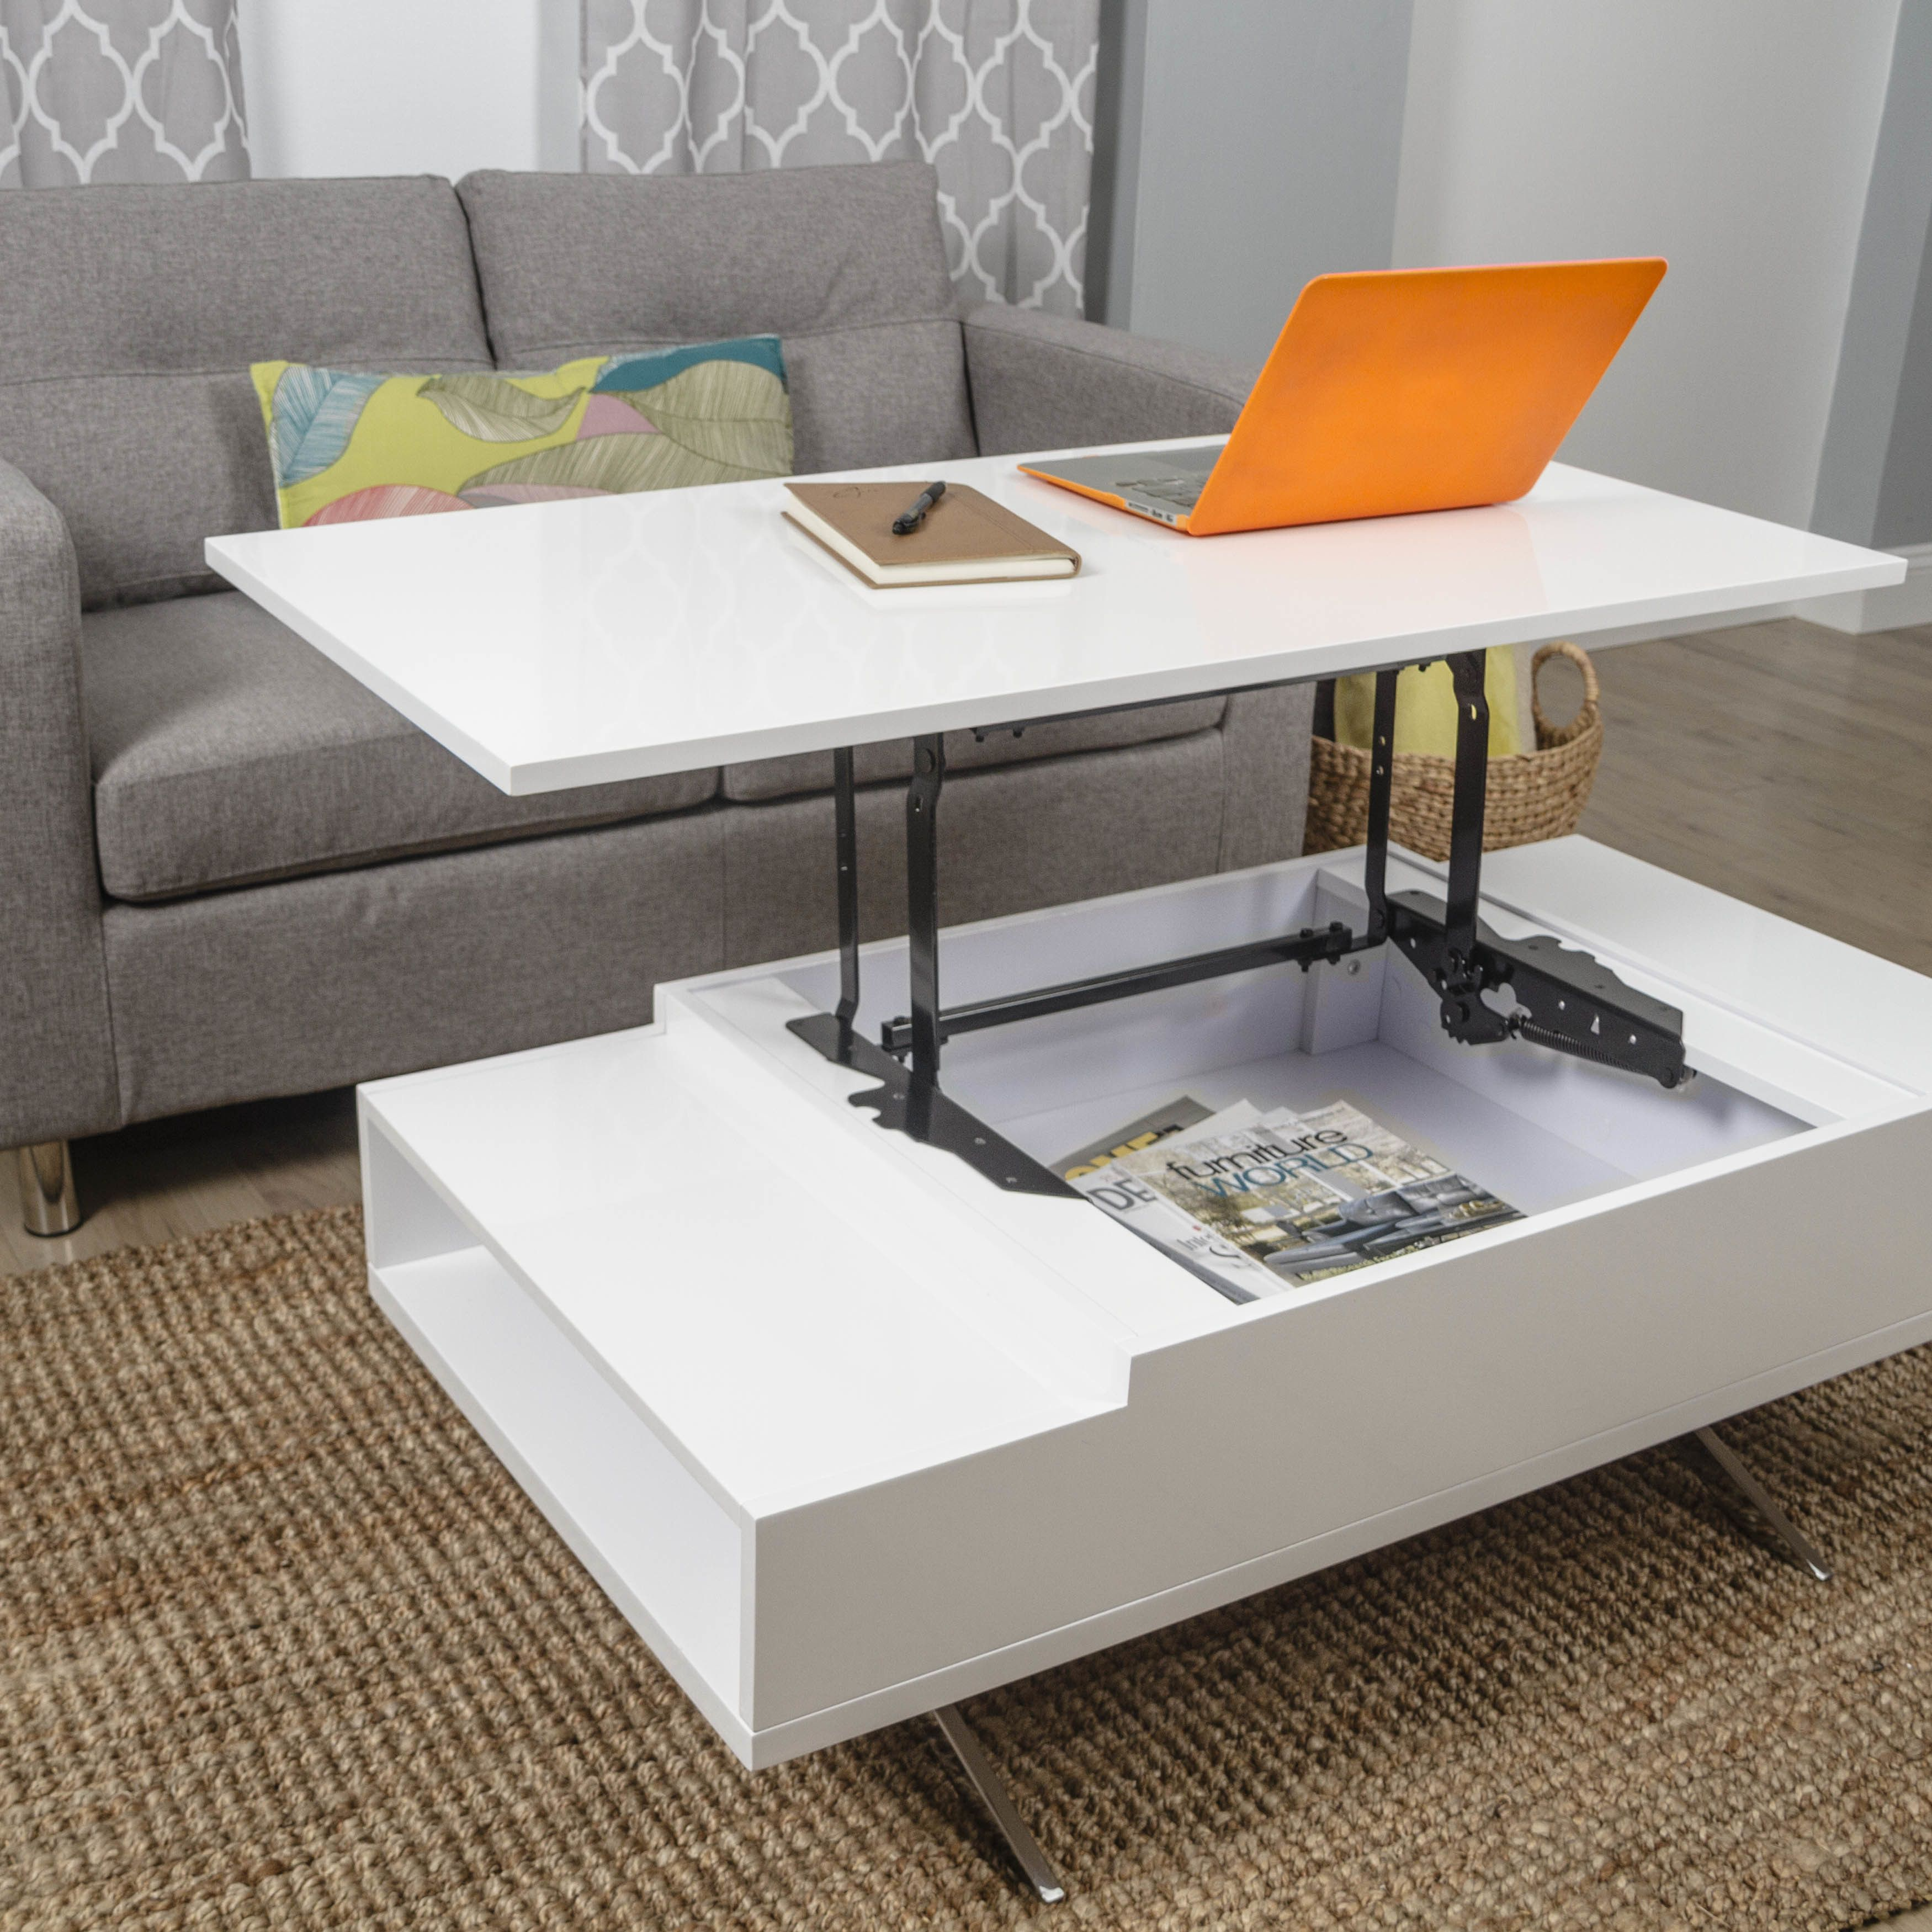 Table Basse Wasser In 2020 Coffee Table With Storage Furniture